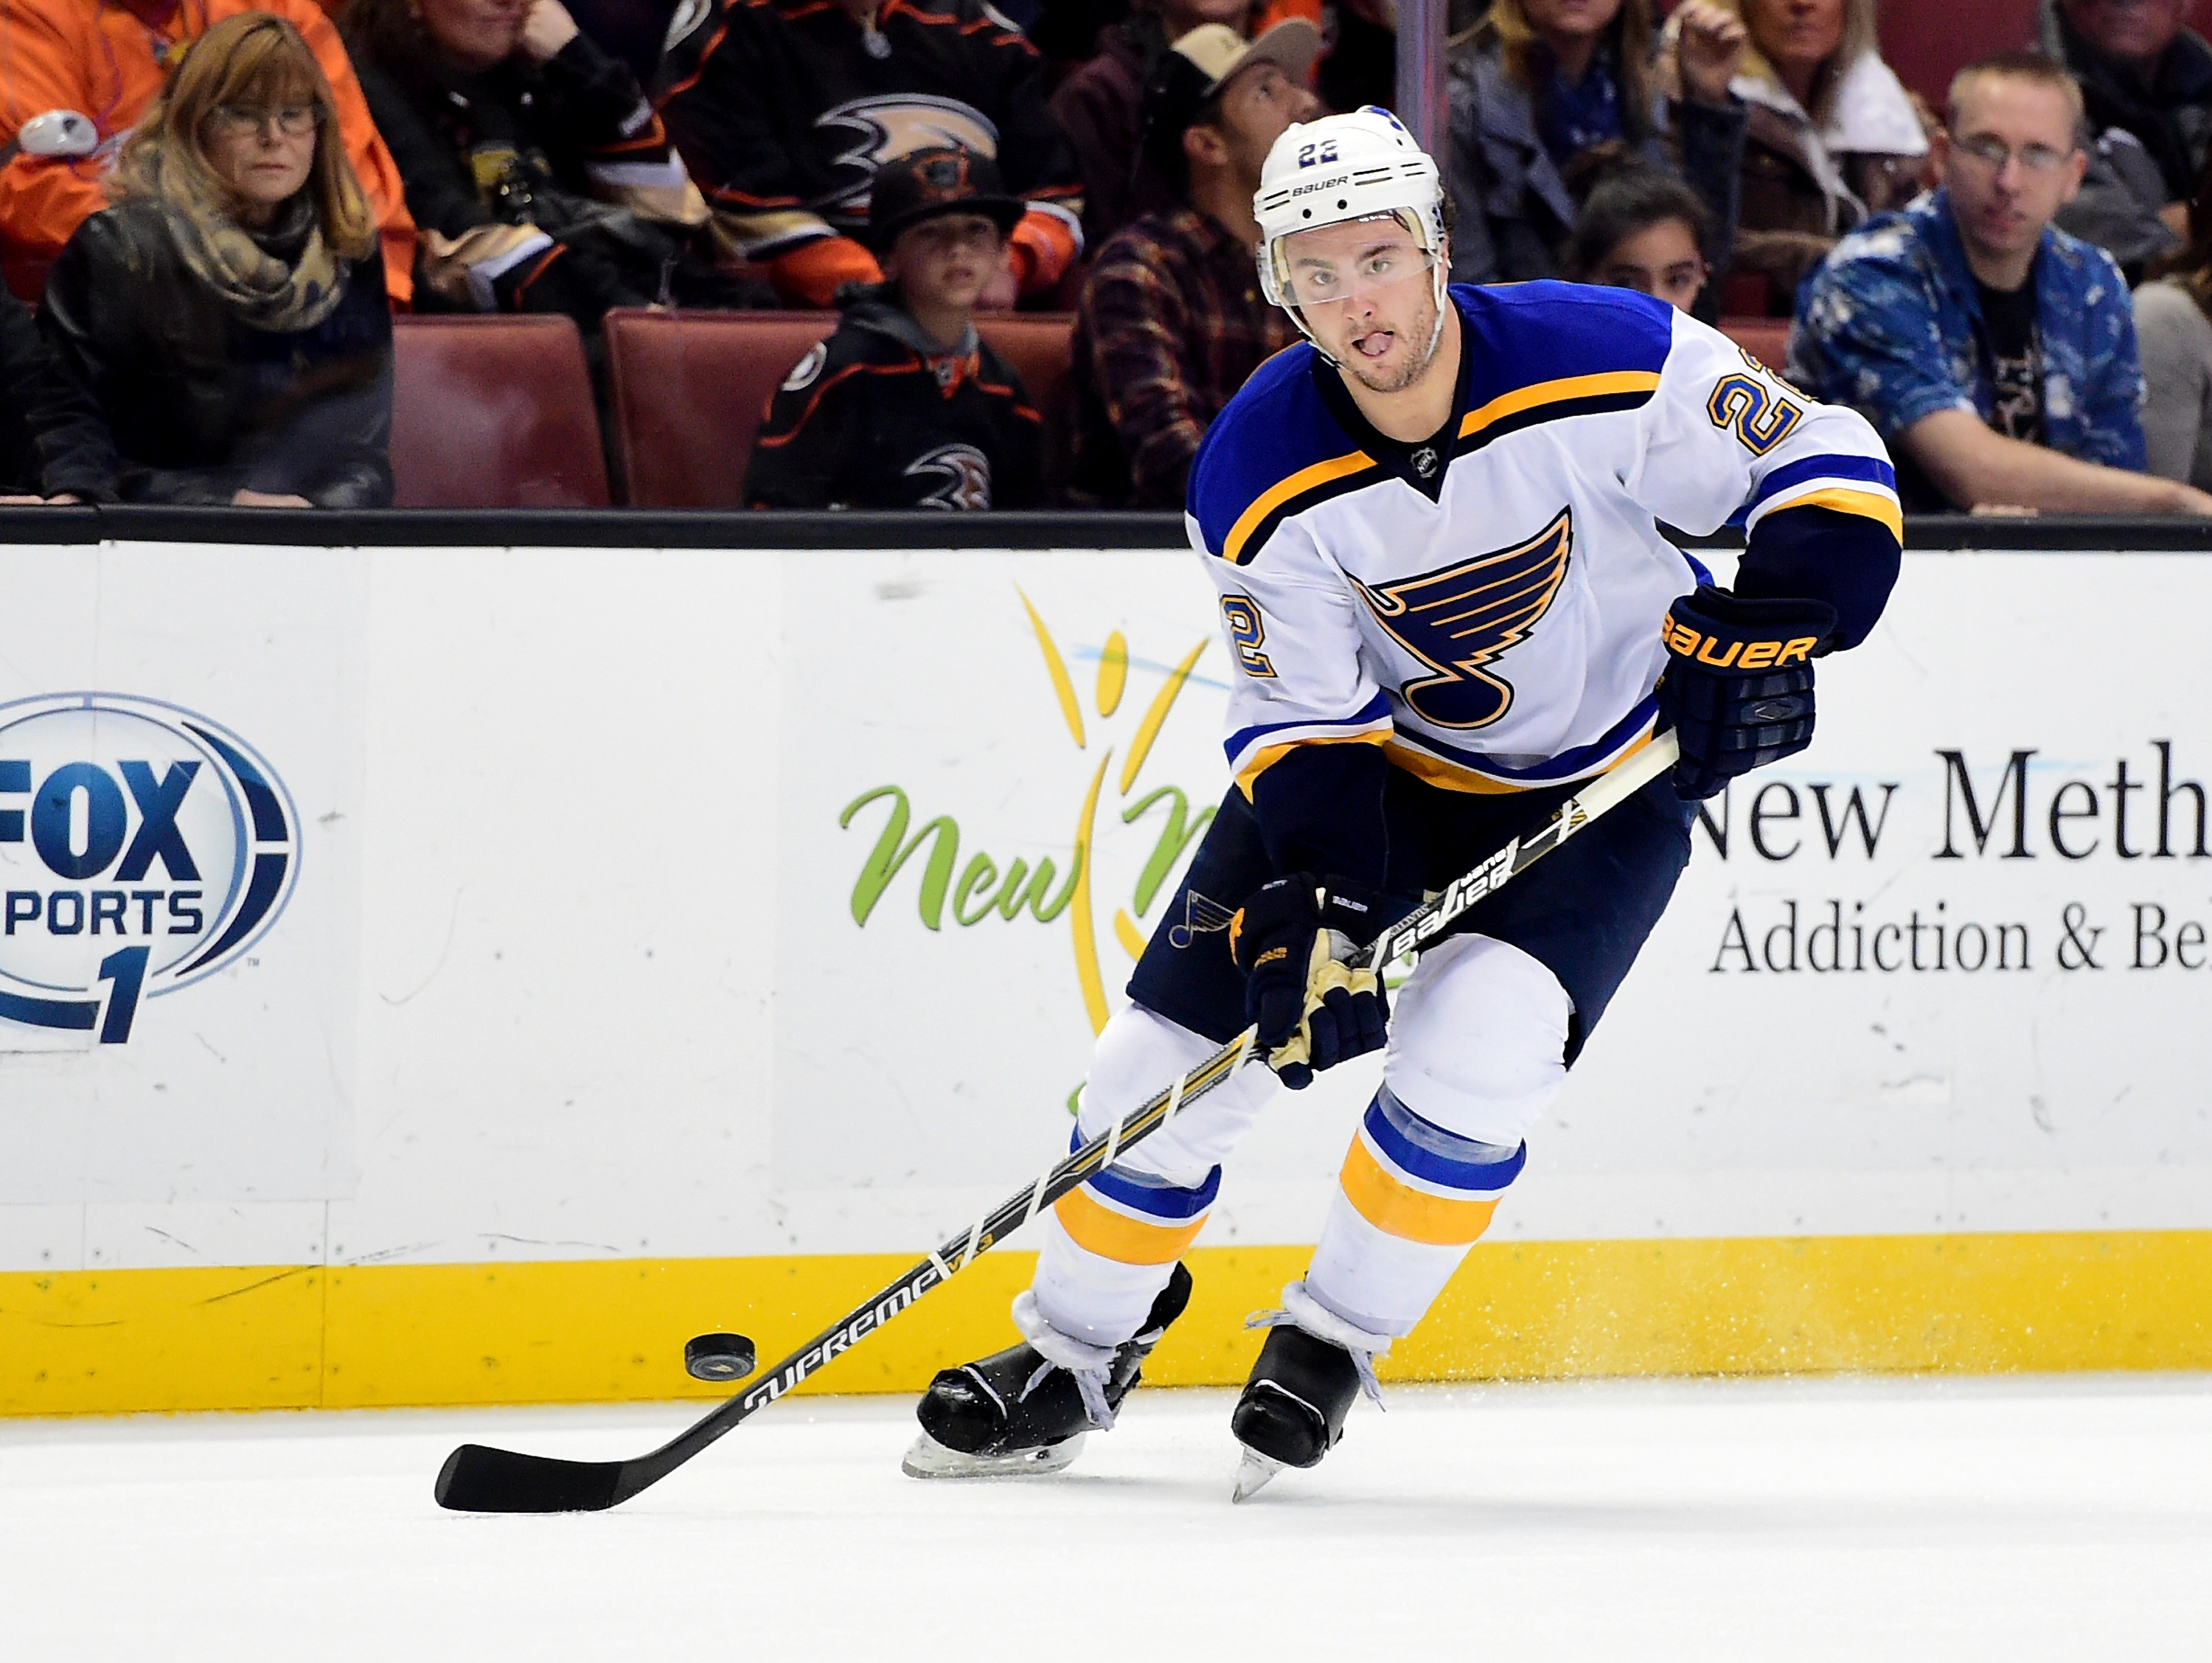 Captials acquire Kevin Shattenkirk in blockbuster trade with Blues